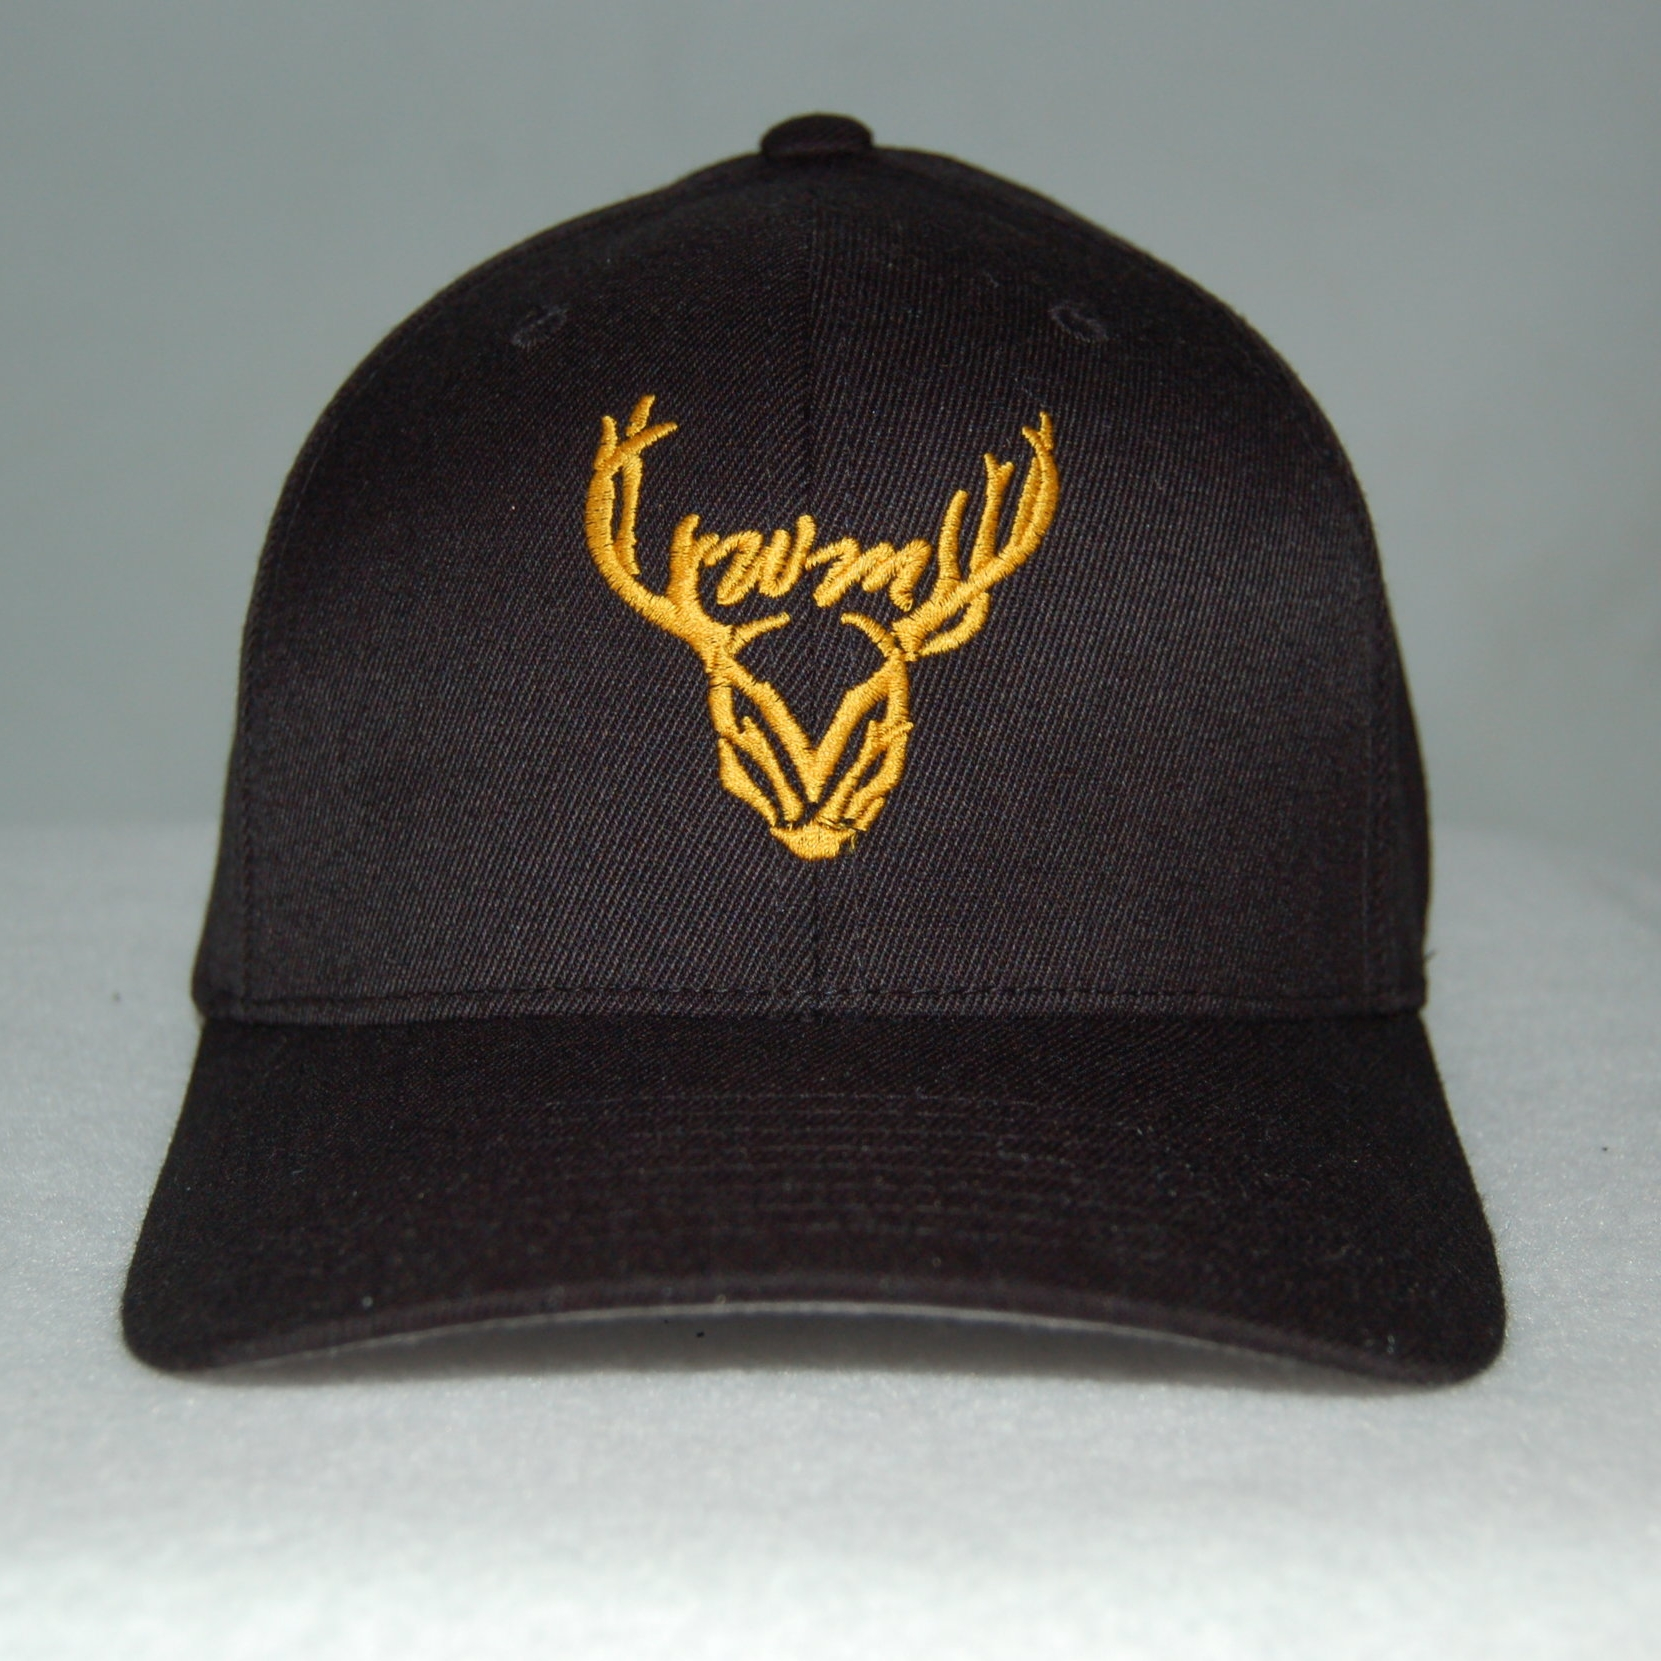 West Milford Highlanders embroidered cap.